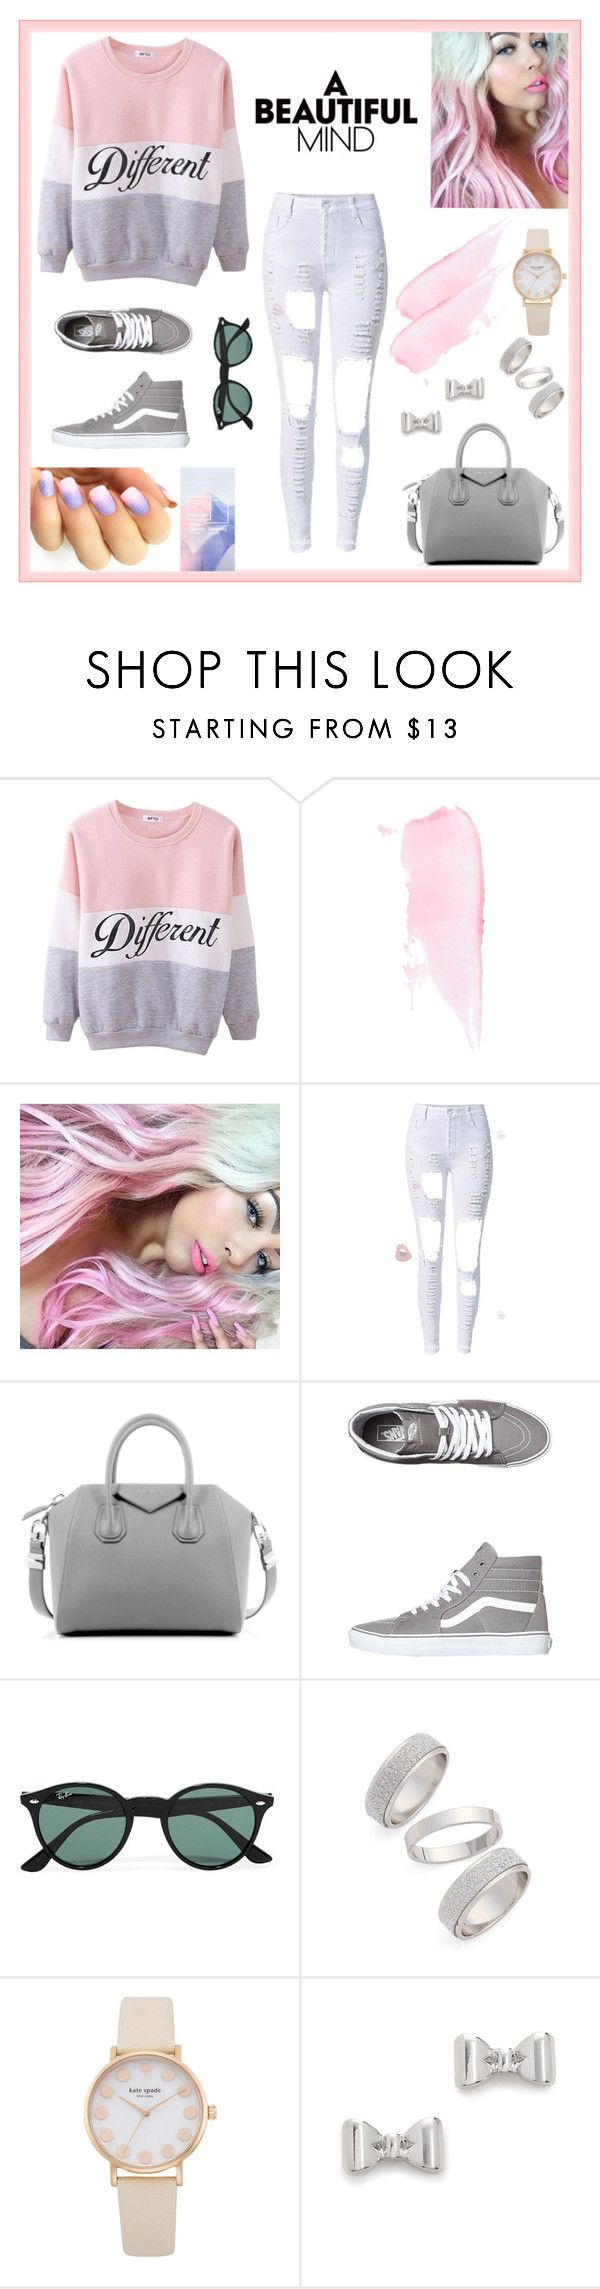 A Beautiful Mind by pepito-sutrisno on Polyvore featuring Vans, Givenchy, Topshop, Marc by Marc Jacobs and Ray-Ban